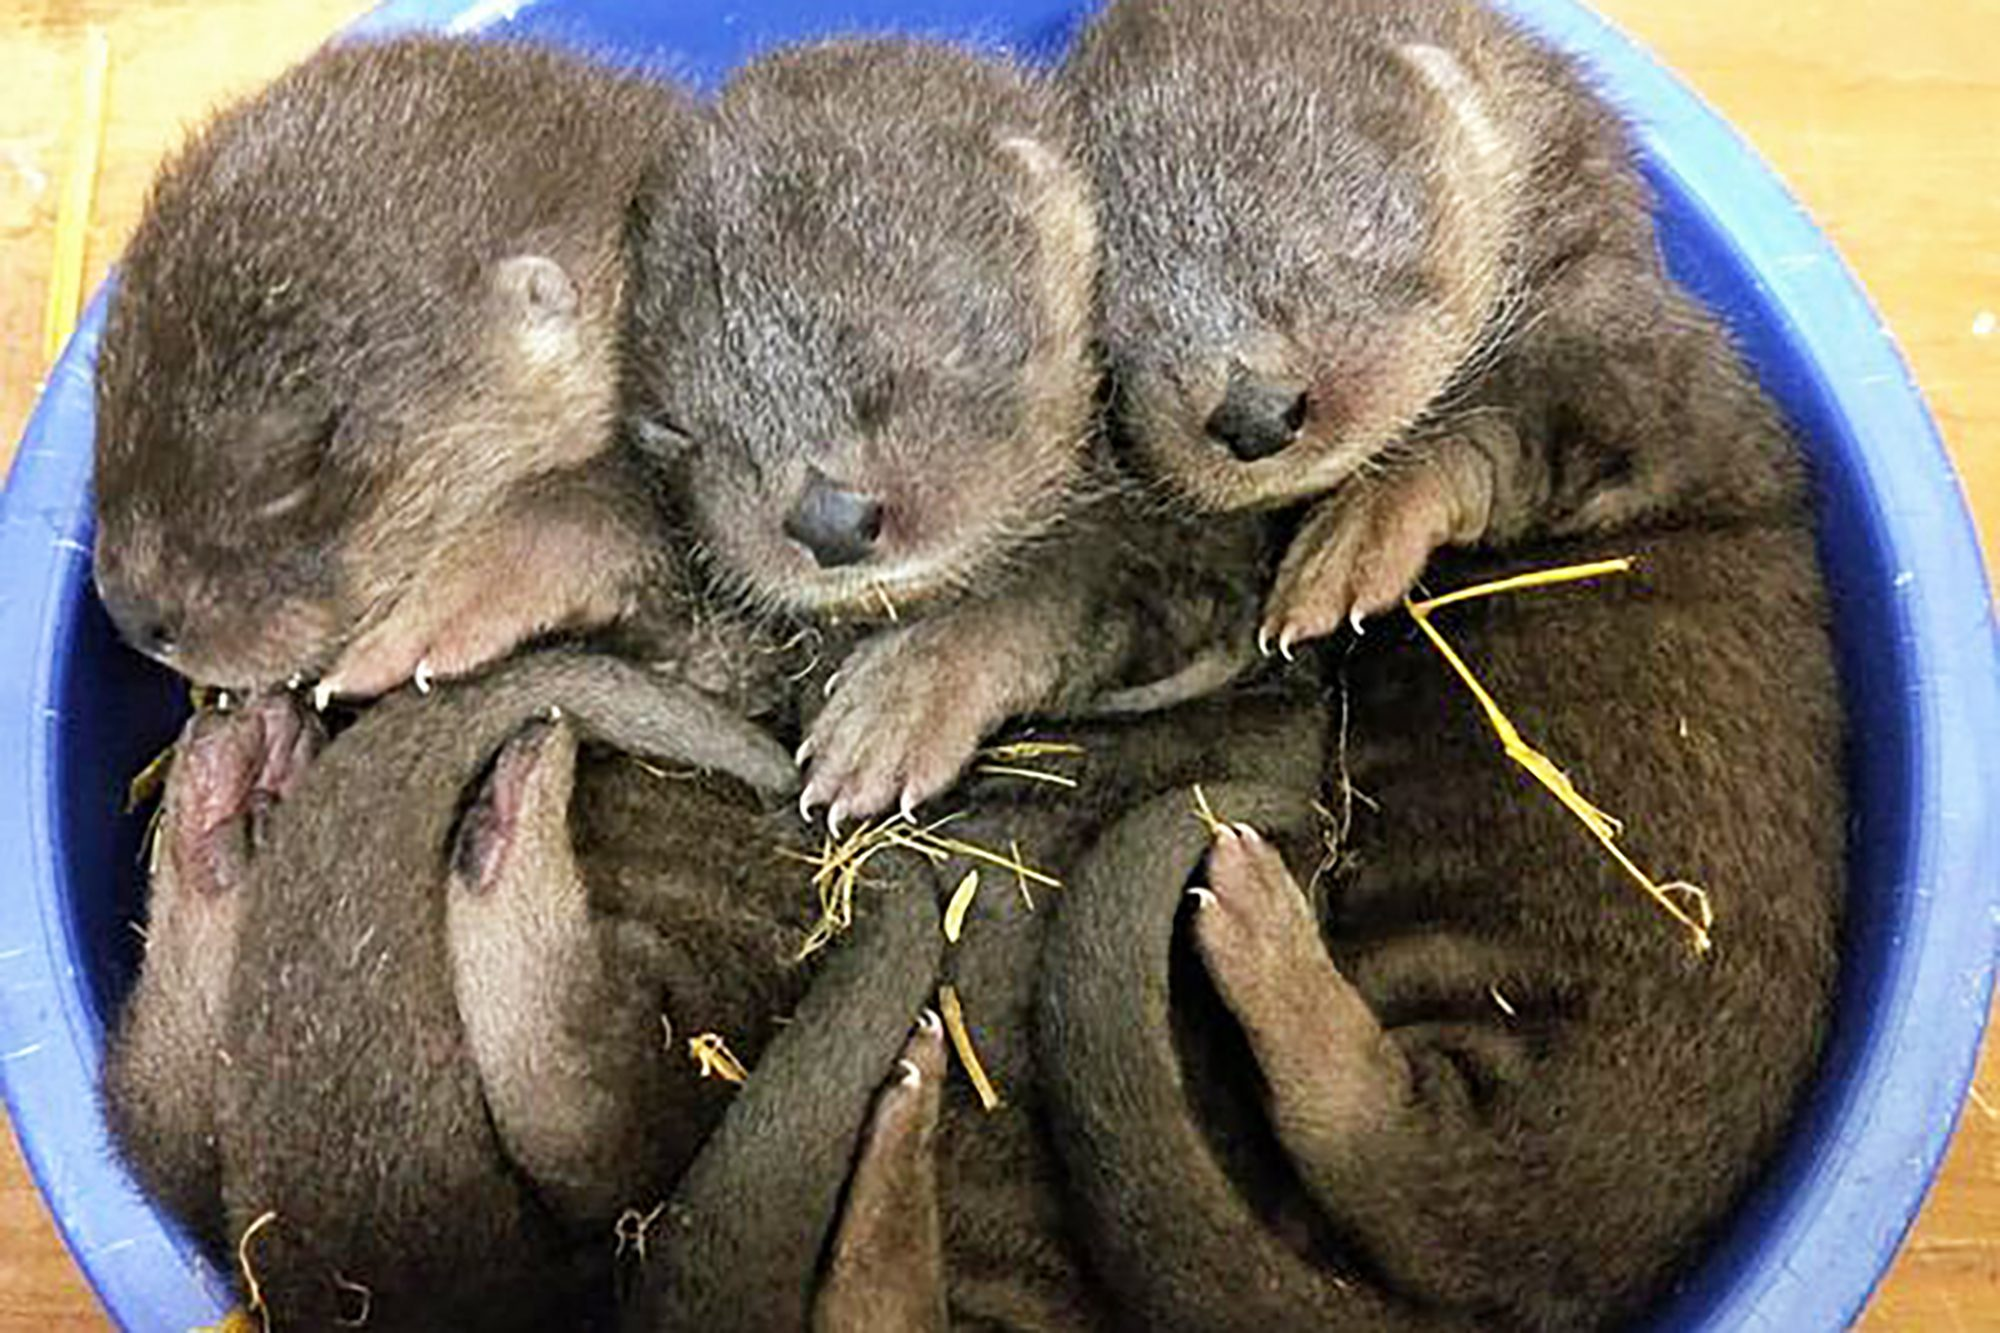 three newborn otters